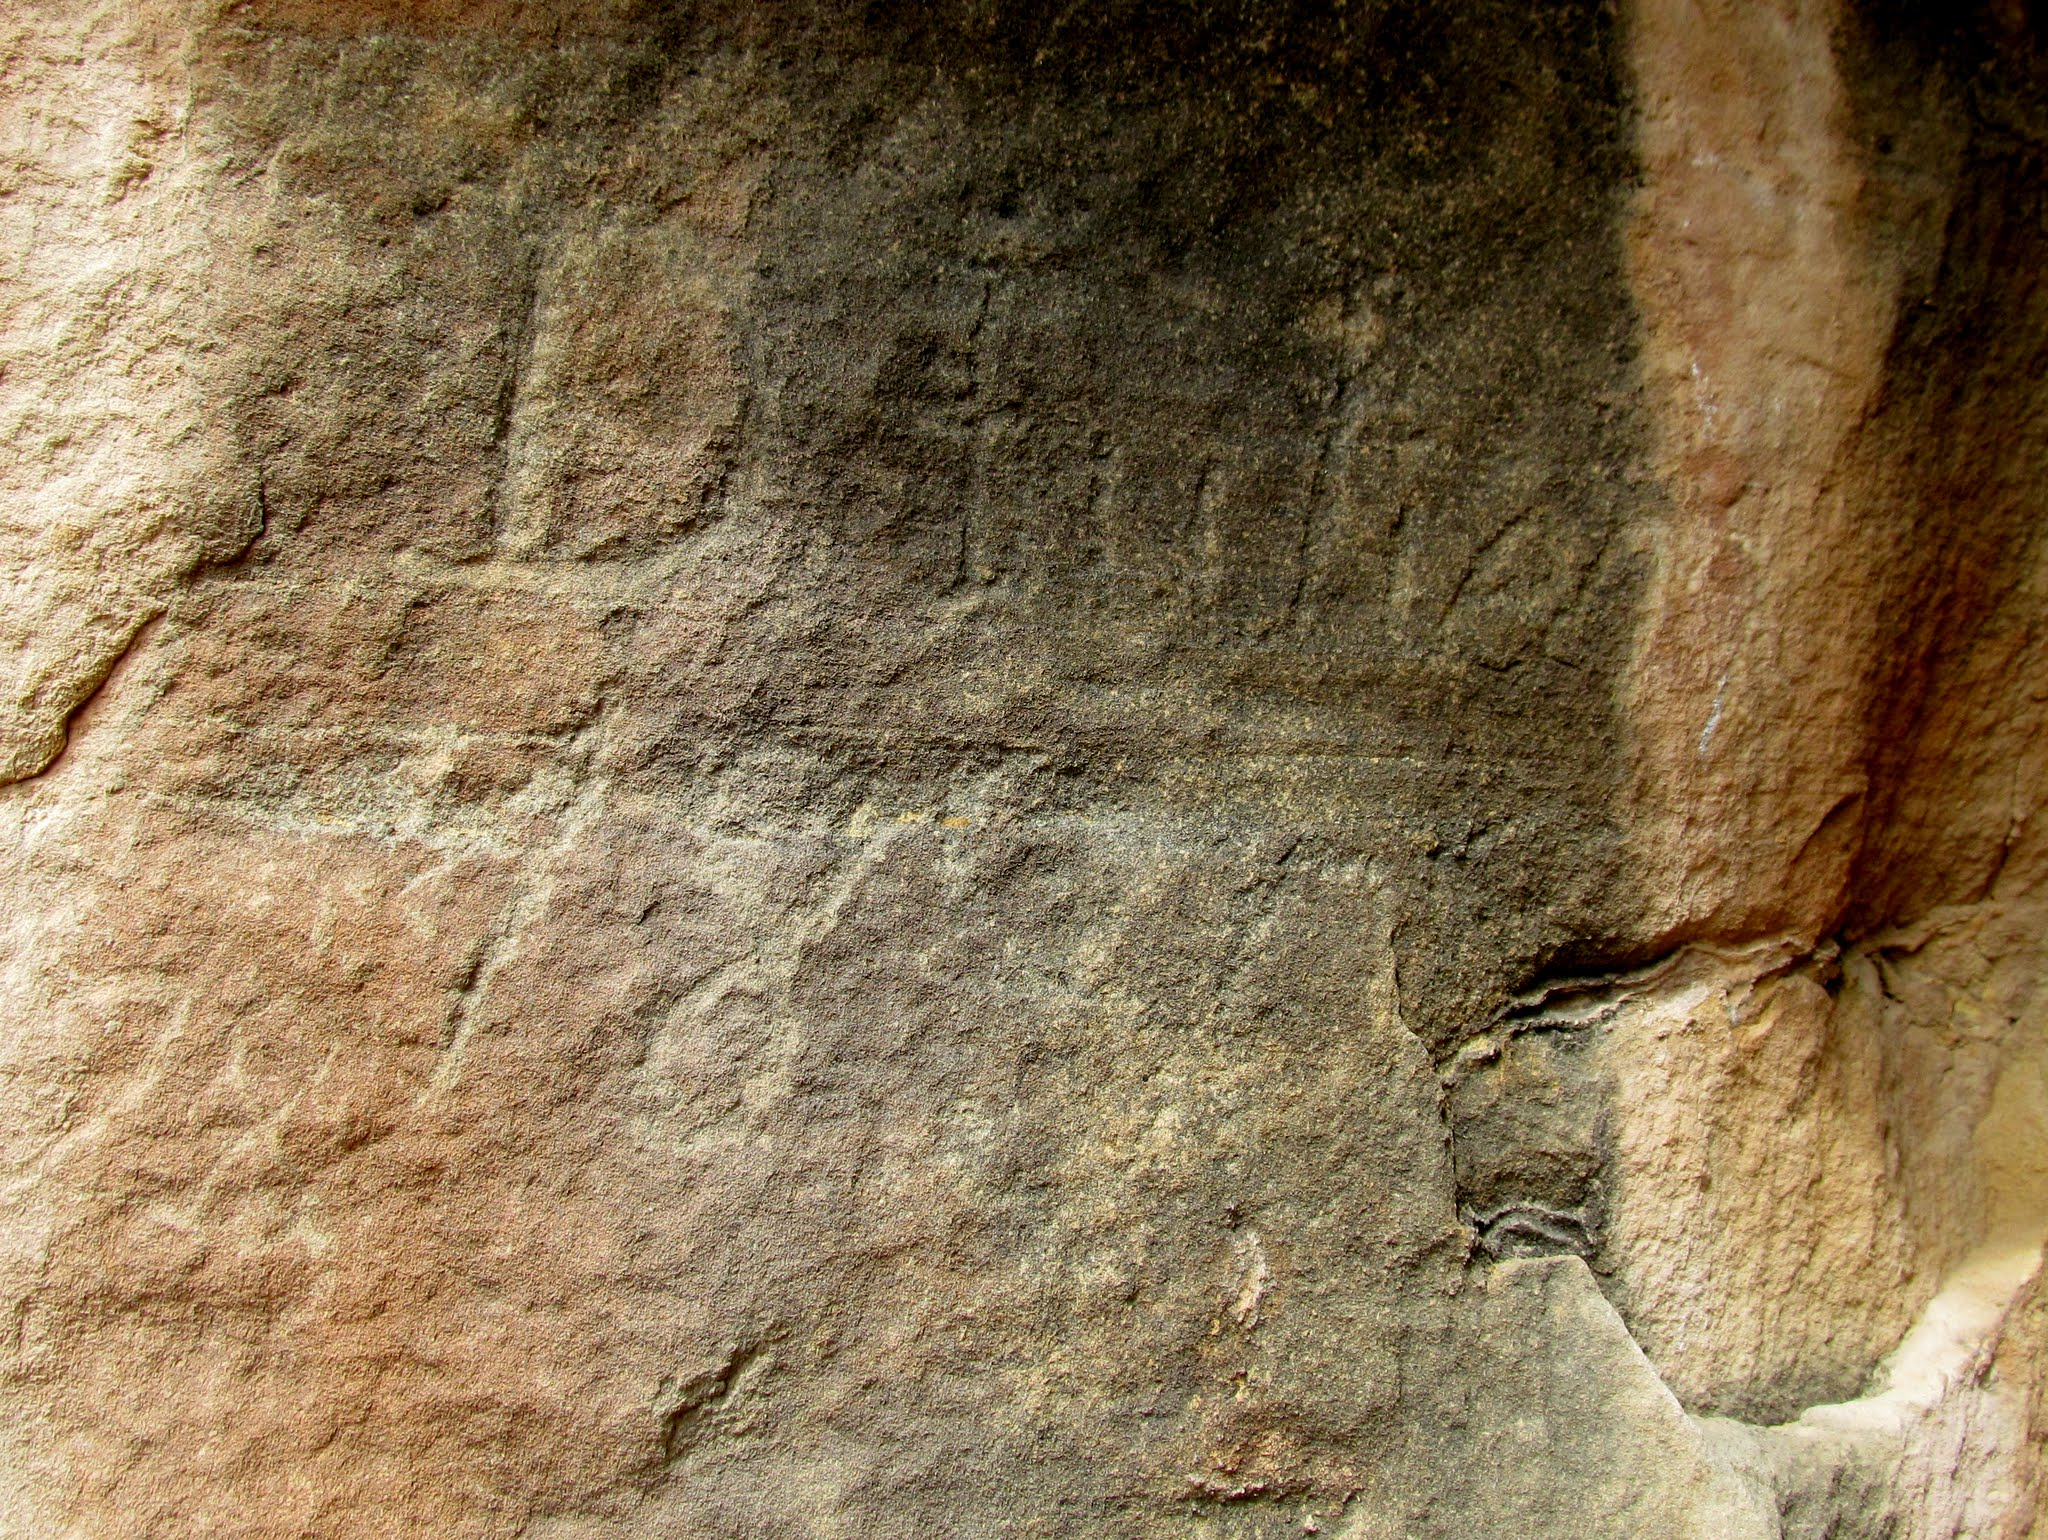 Photo: The oldest known Denis Julien inscription:  D. Julien 1830